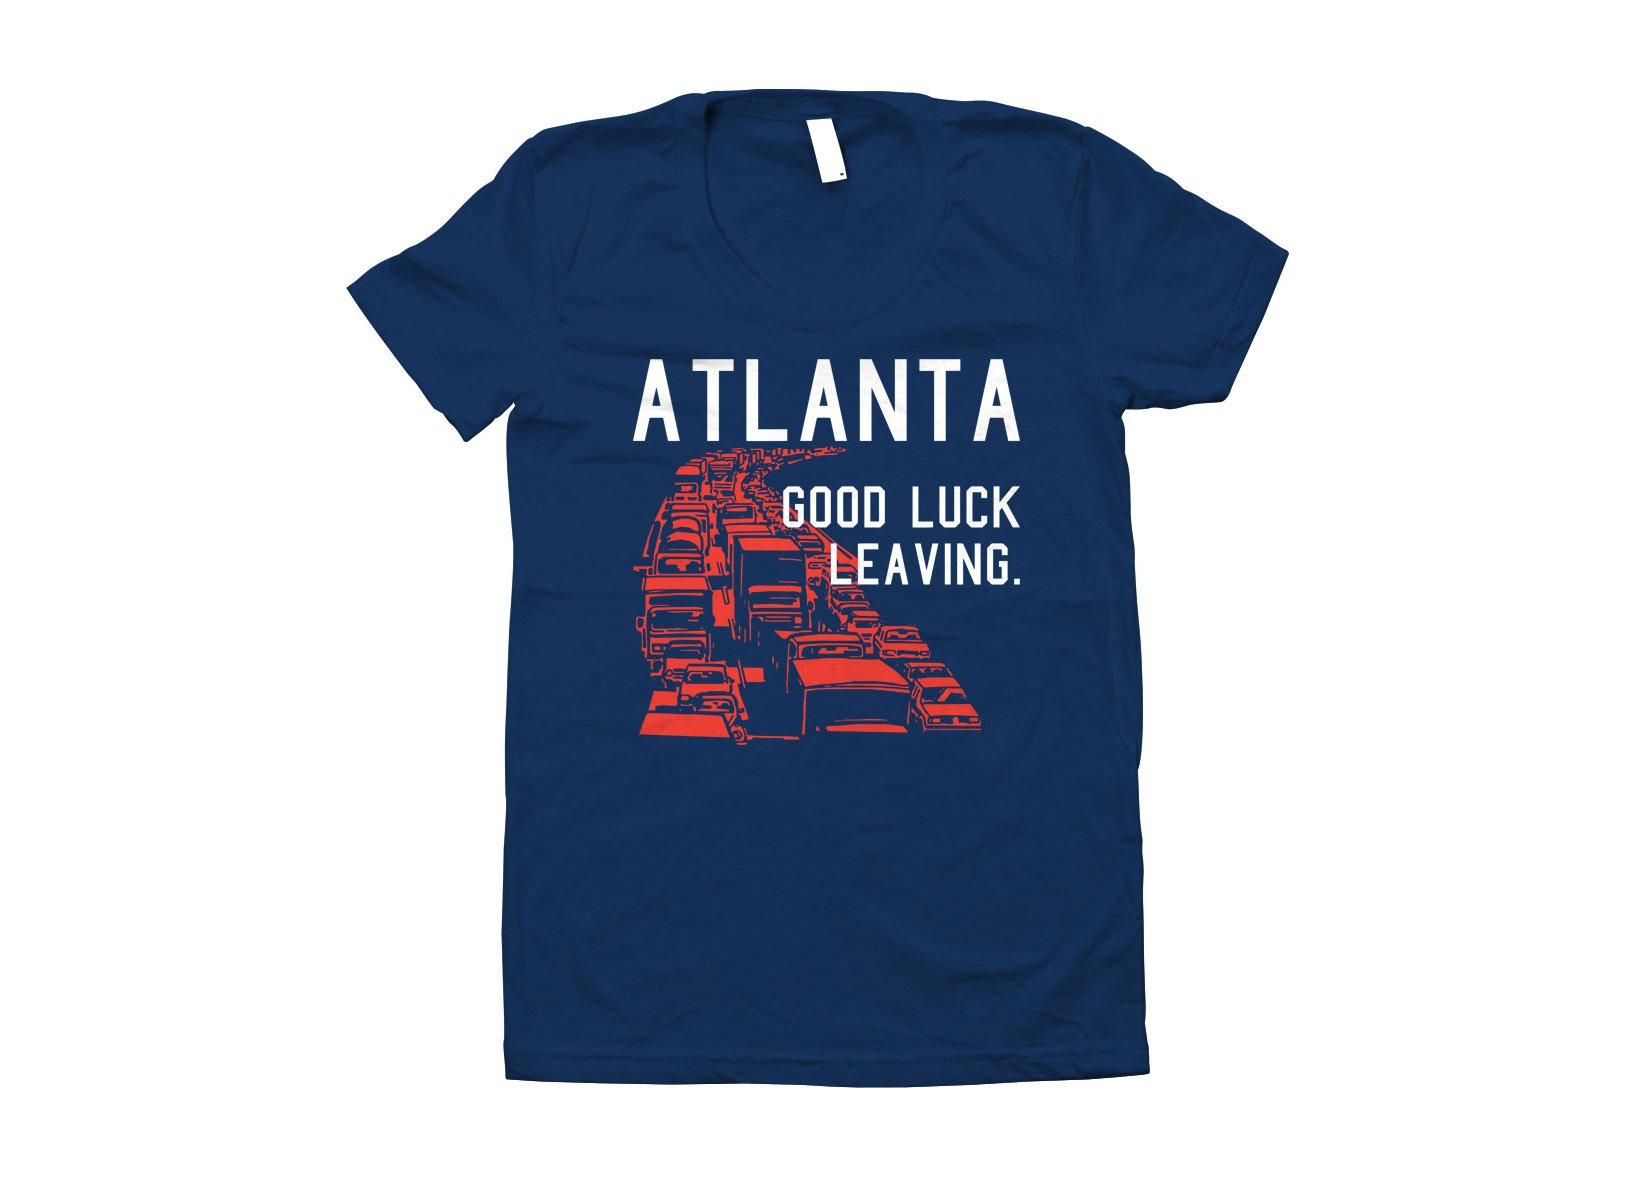 Atlanta, Good Luck Leaving. on Juniors T-Shirt